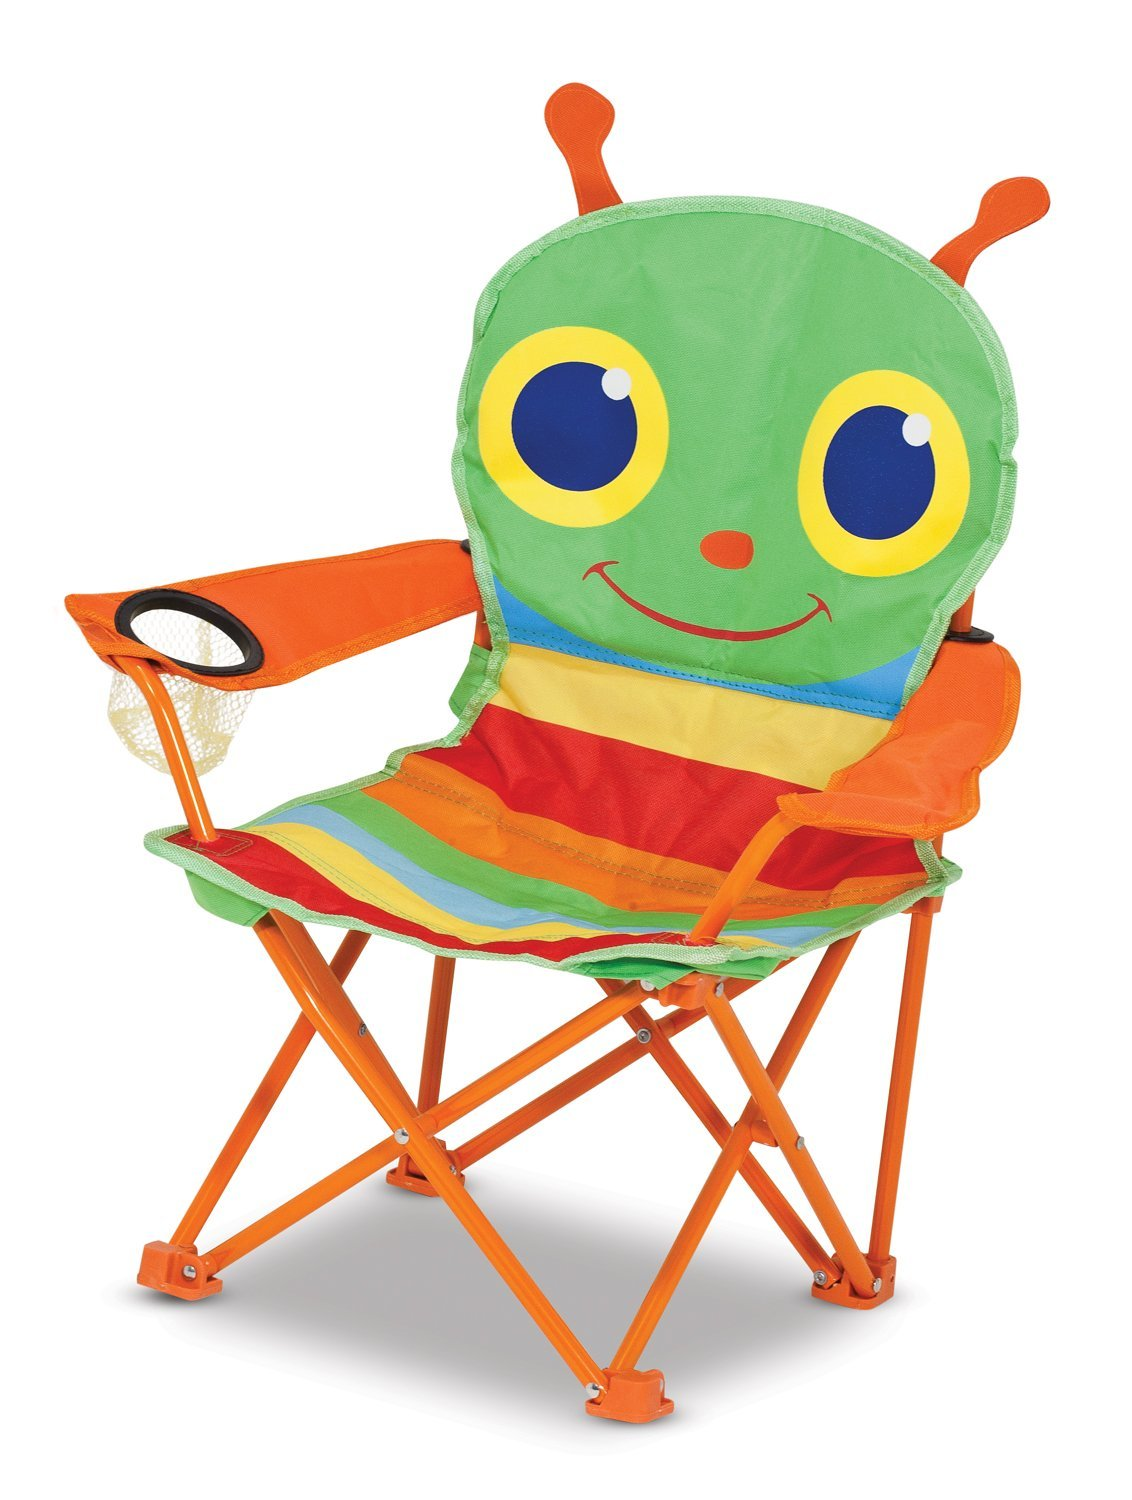 Melissa & Doug Sunny Patch Happy Giddy Chair